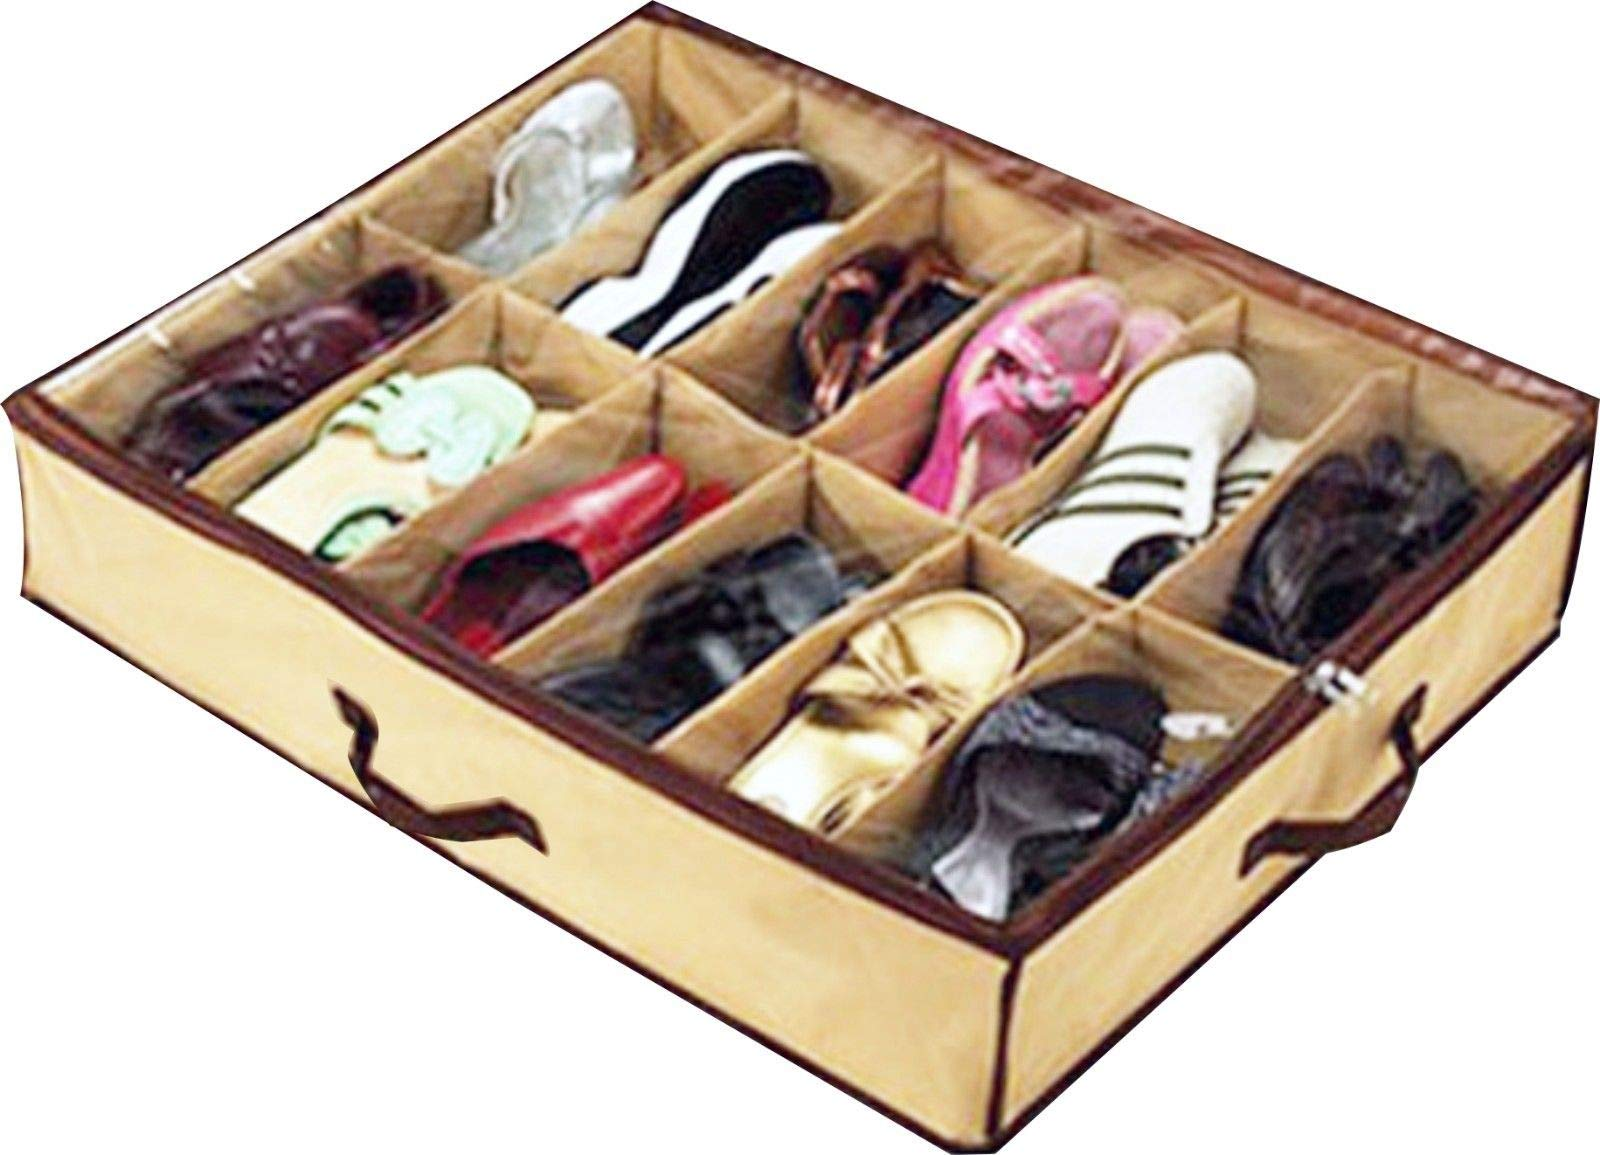 eyesonme Home Storage Shoe Organizers 12 Cells Under Bed Bag Foldable Closet Drawer, 2 pcs by eyesonme (Image #2)